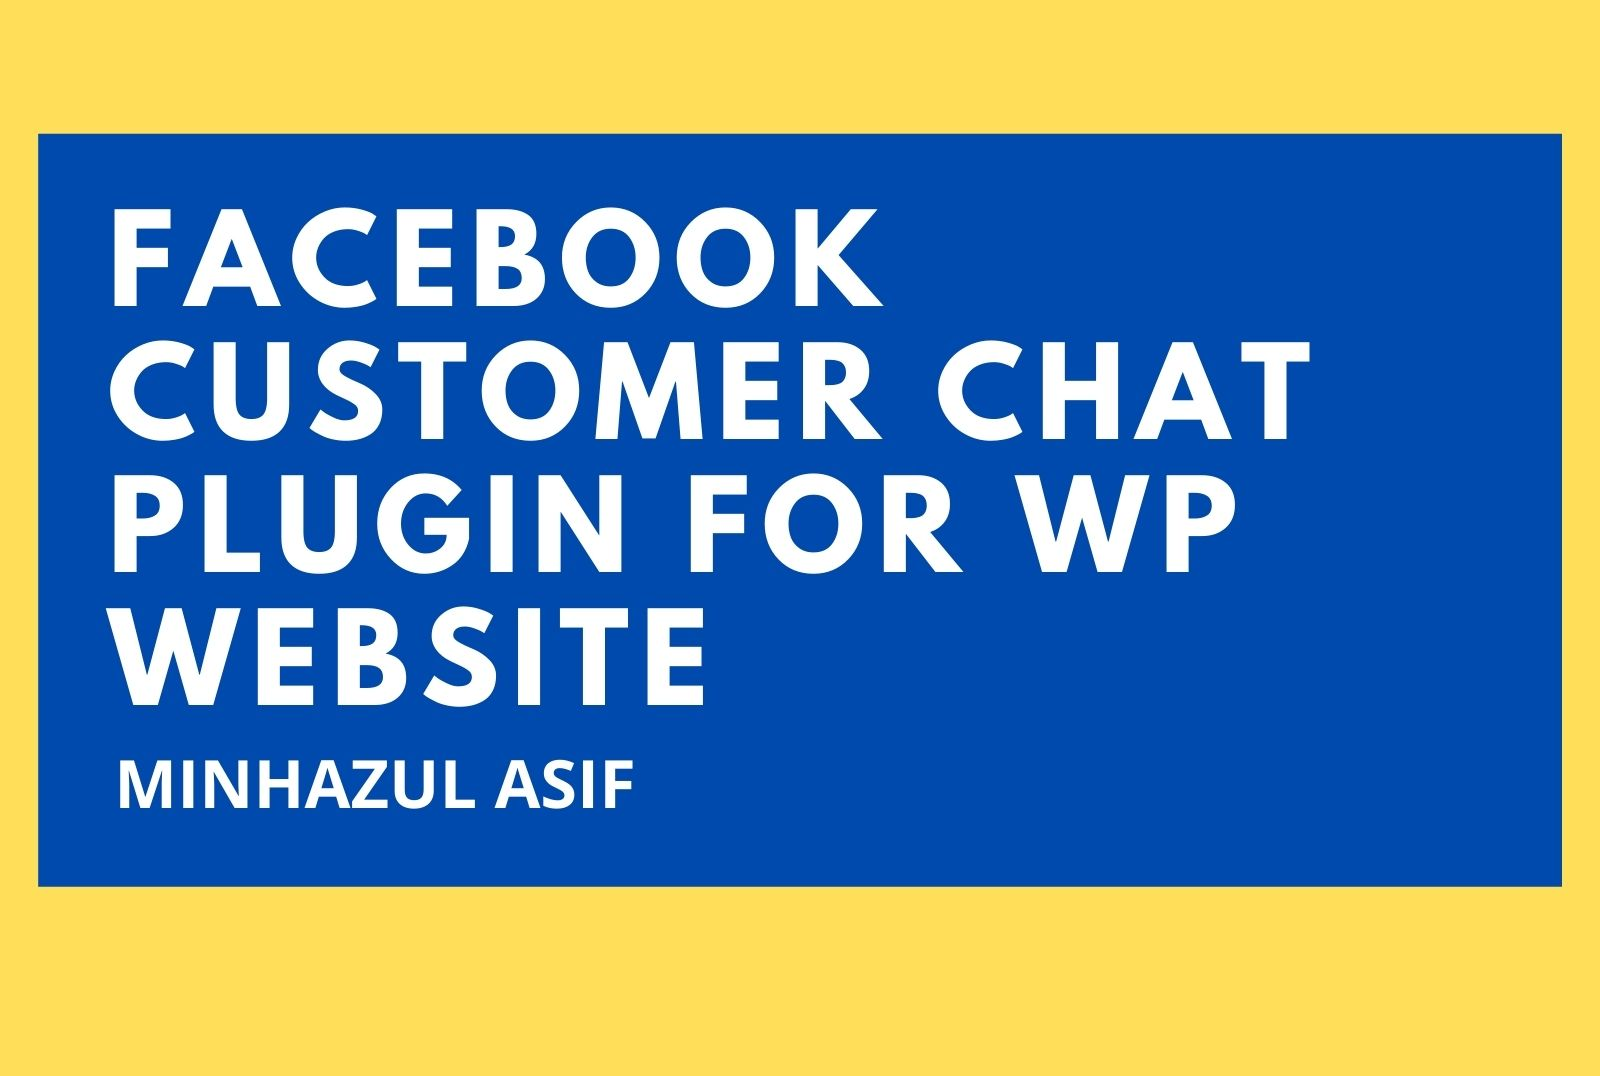 Facebook Customer Chat Plugin for wp website